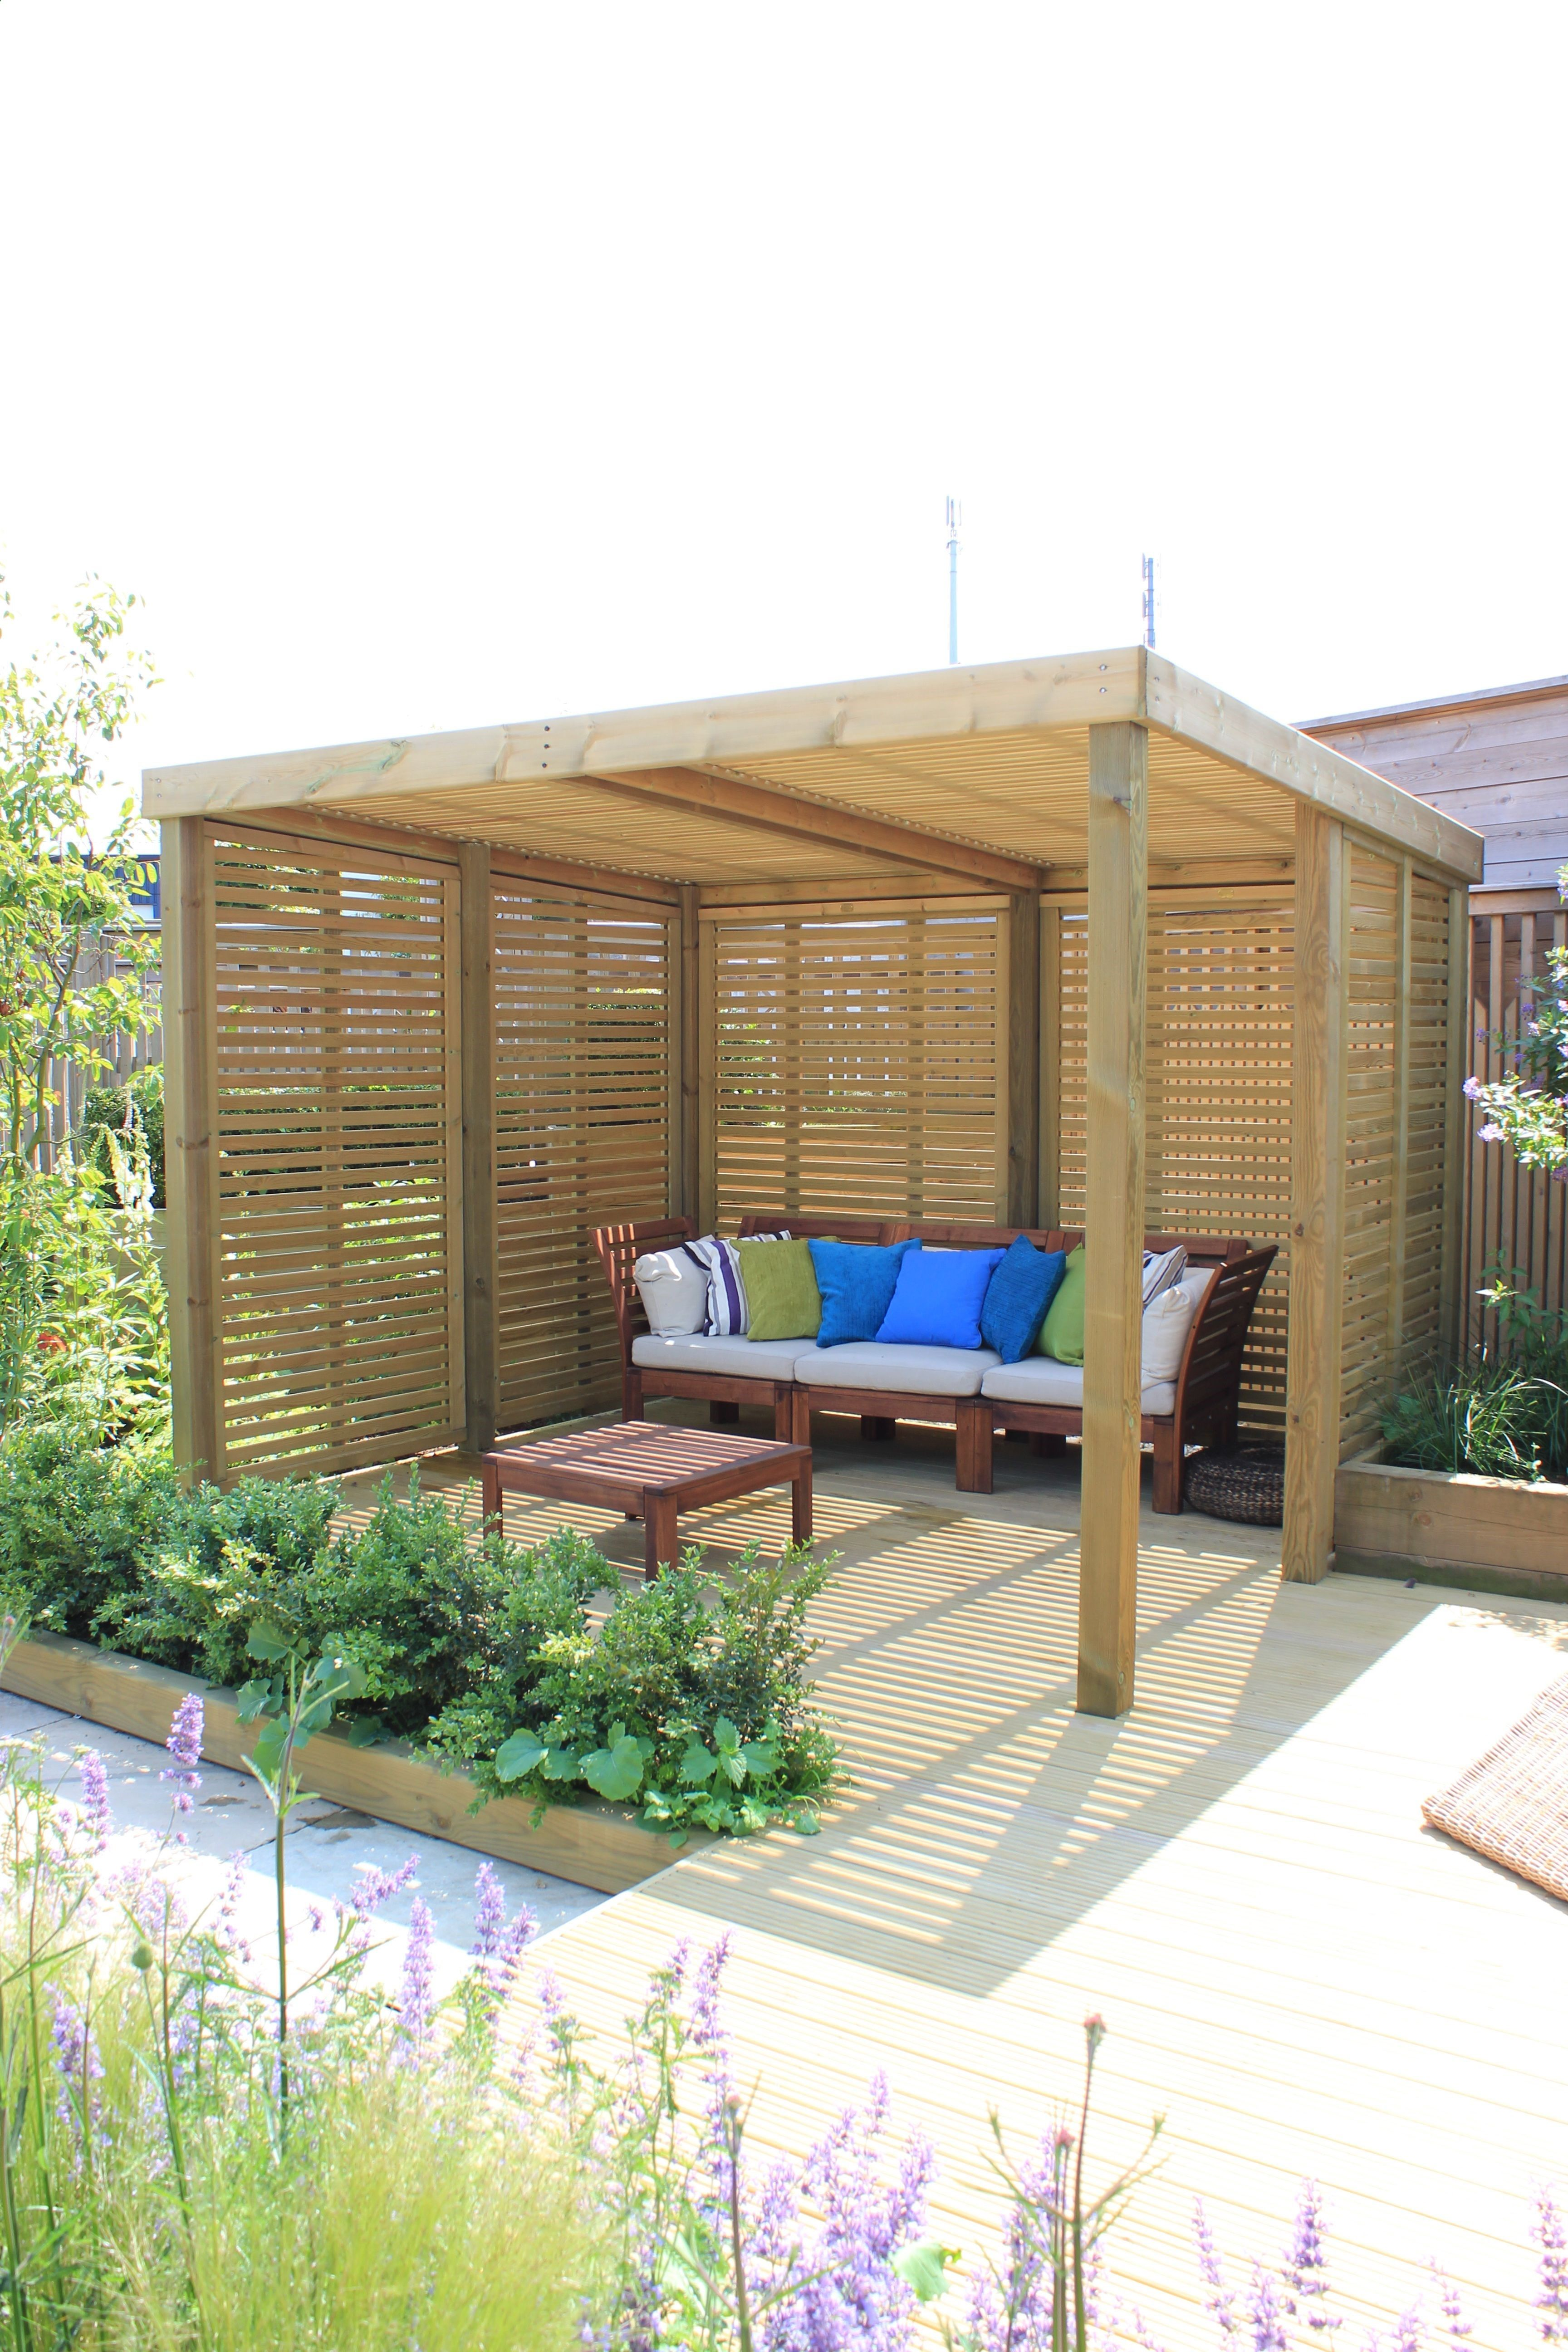 Plans Of Woodworking Diy Projects  My Shed Plans